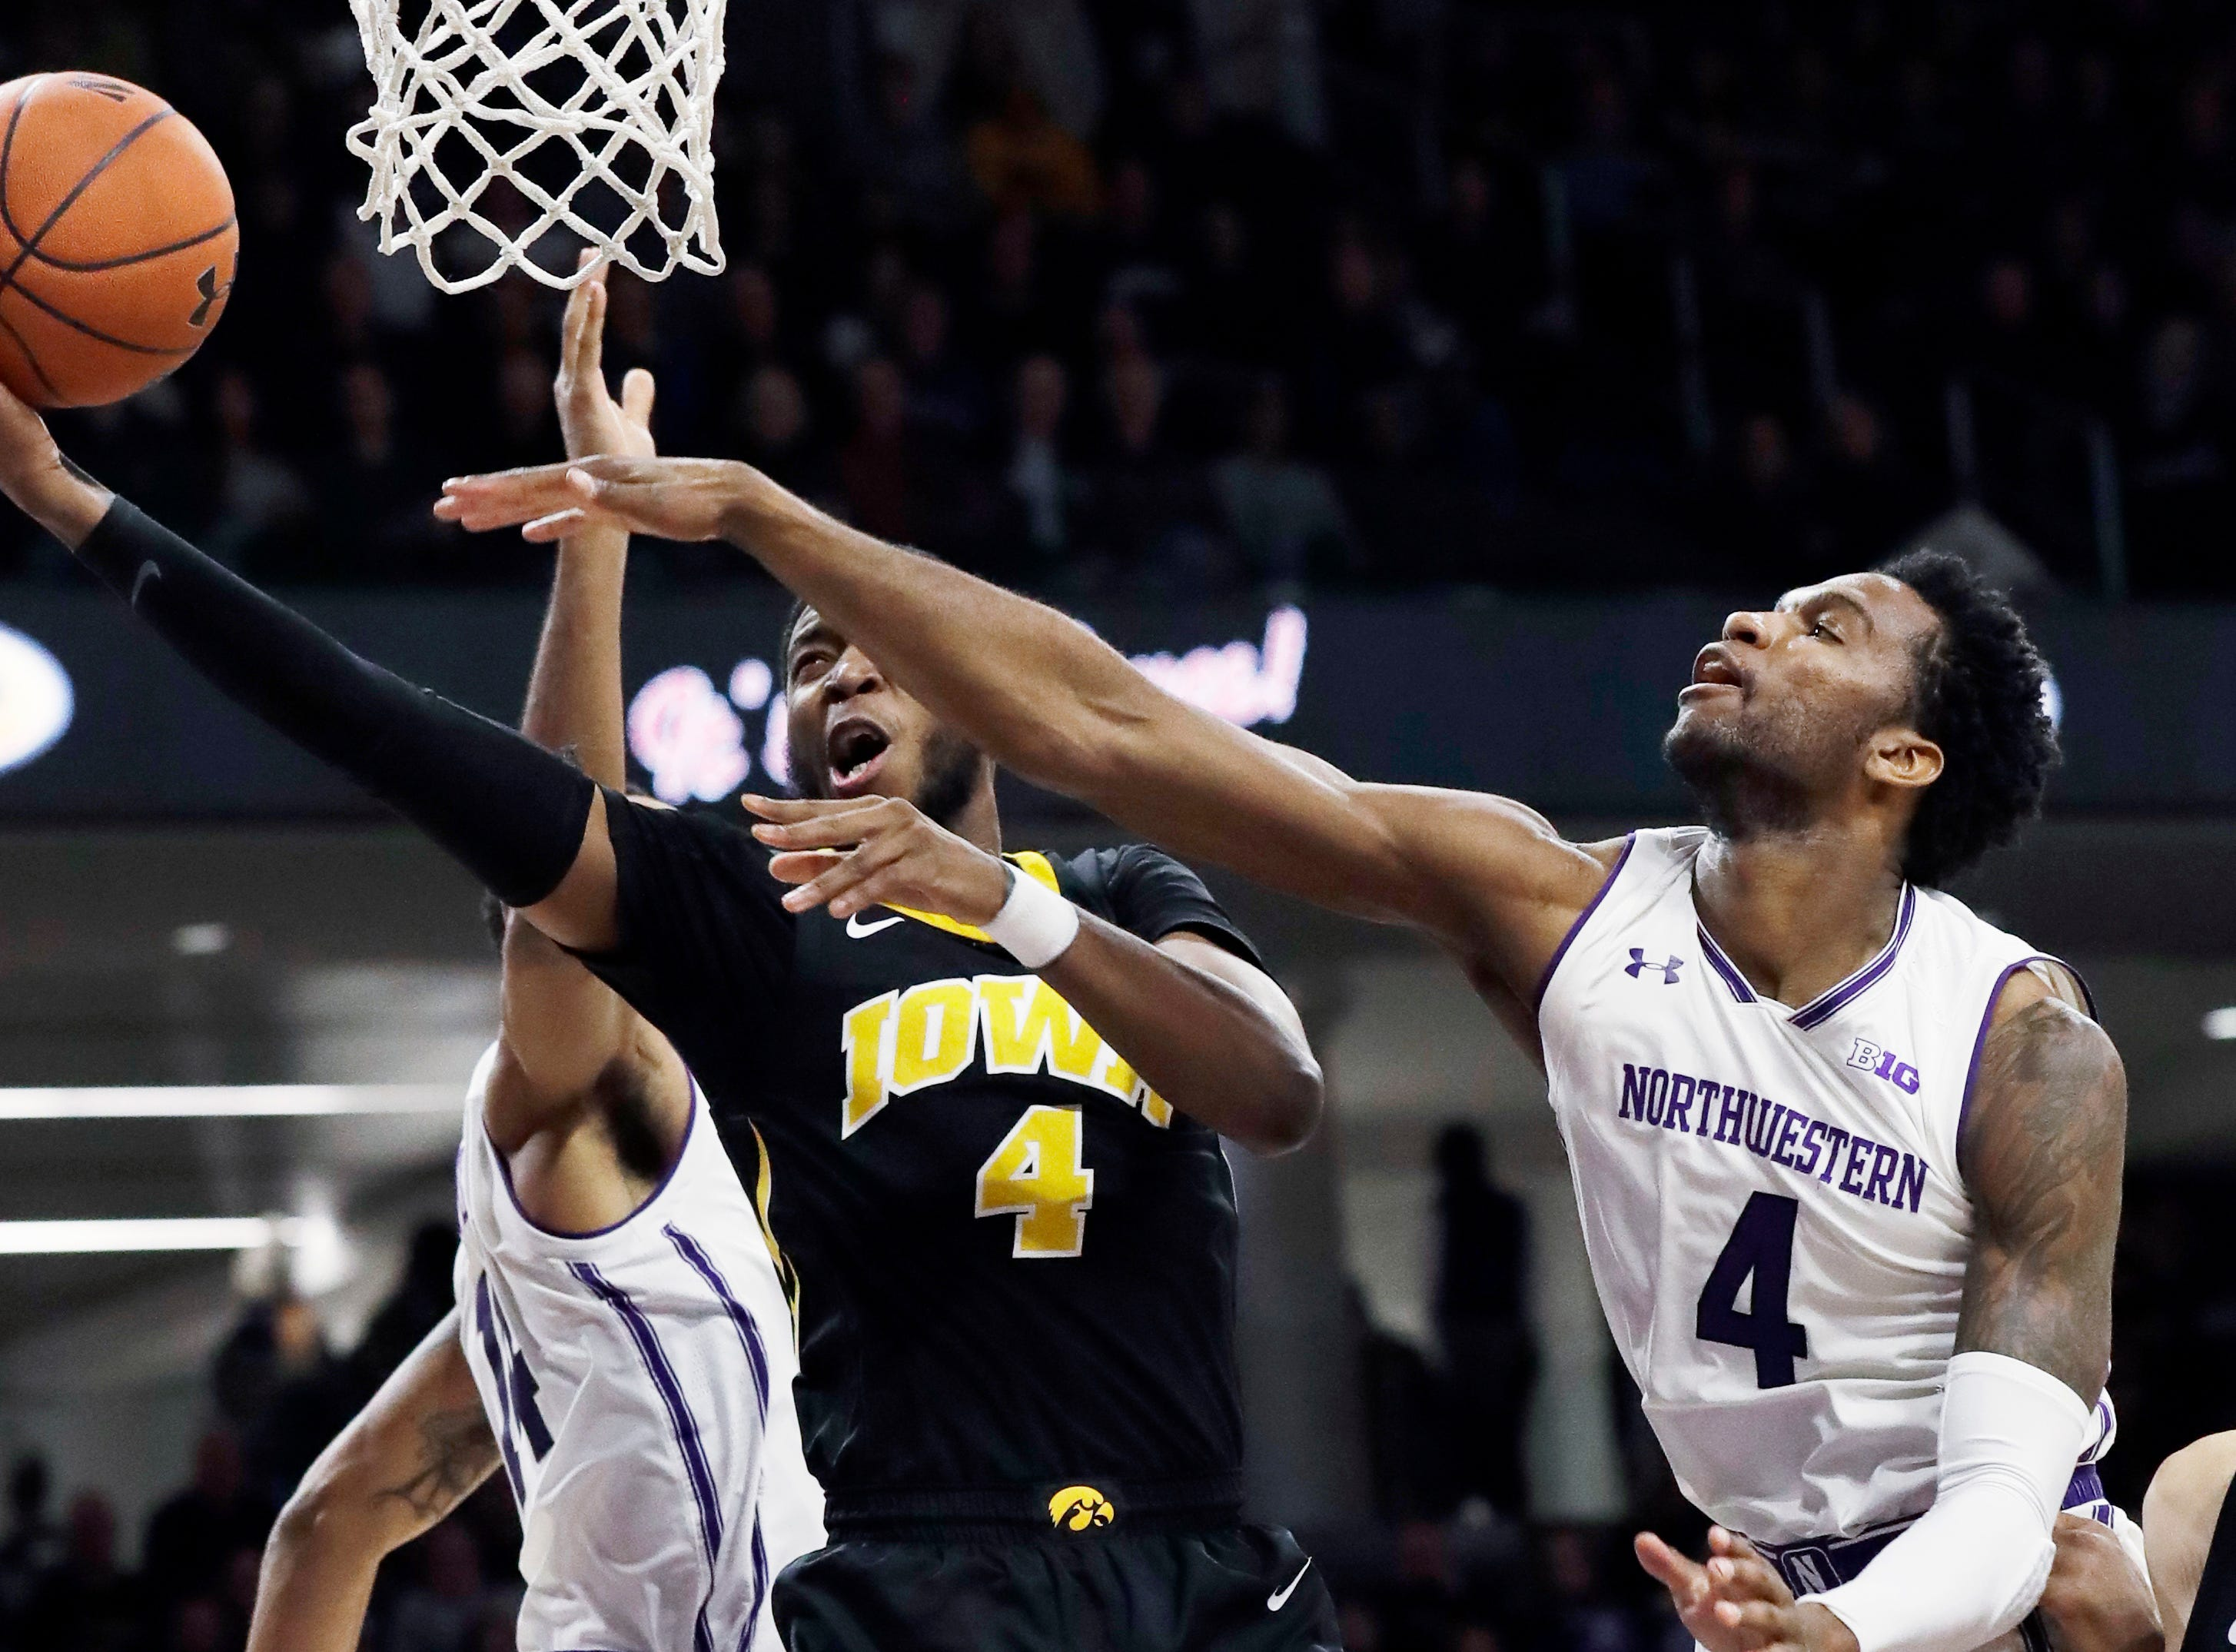 Iowa guard Isaiah Moss, left, drives to the basket against Northwestern forward Vic Law, right, and guard Ryan Taylor during the first half of an NCAA college basketball game Wednesday, Jan. 9, 2019, in Evanston, Ill. (AP Photo/Nam Y. Huh)